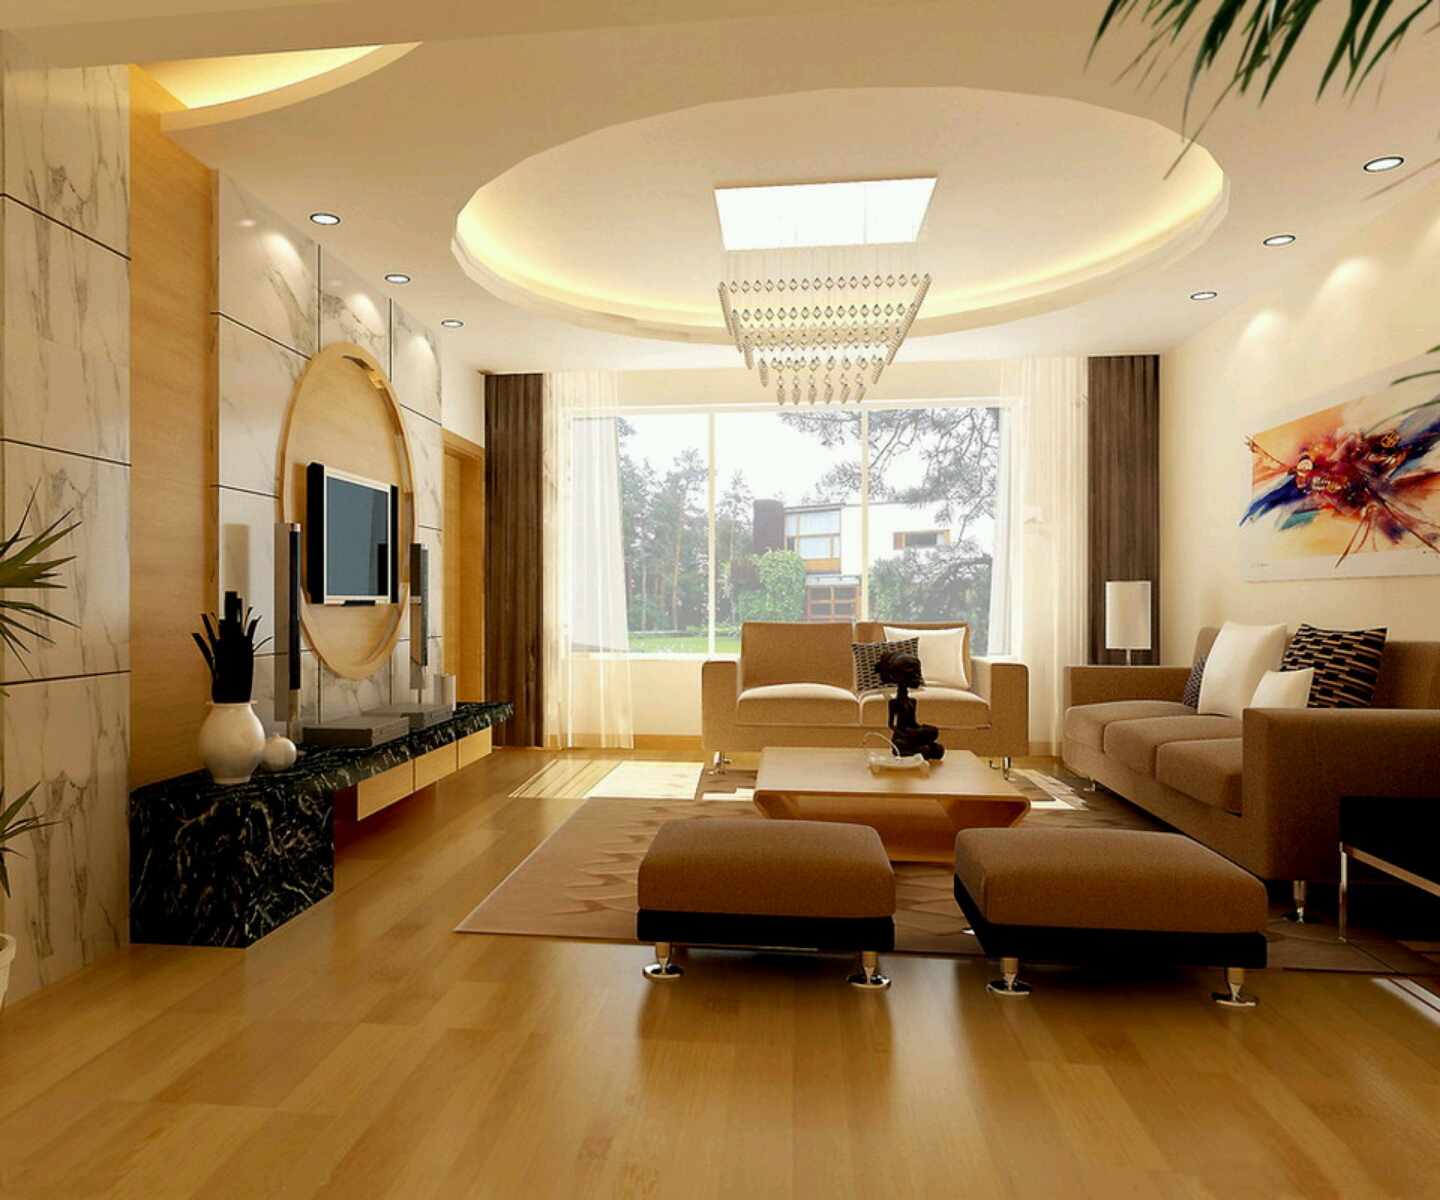 Modern interior decoration living rooms ceiling designs ideas new home designs - Modern living room design images ...